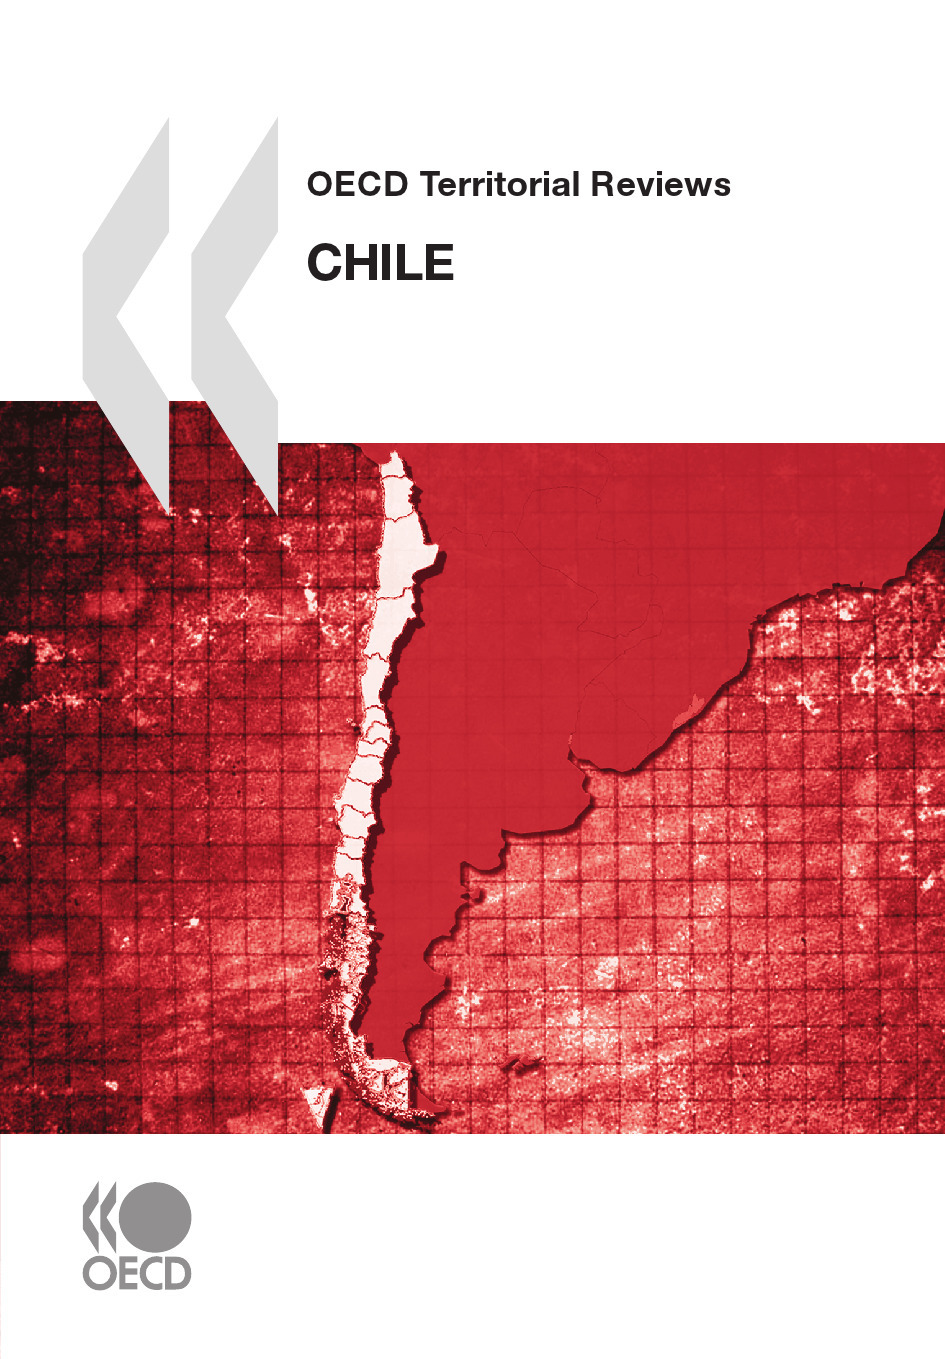 Chile - oecd territorial reviews 2009